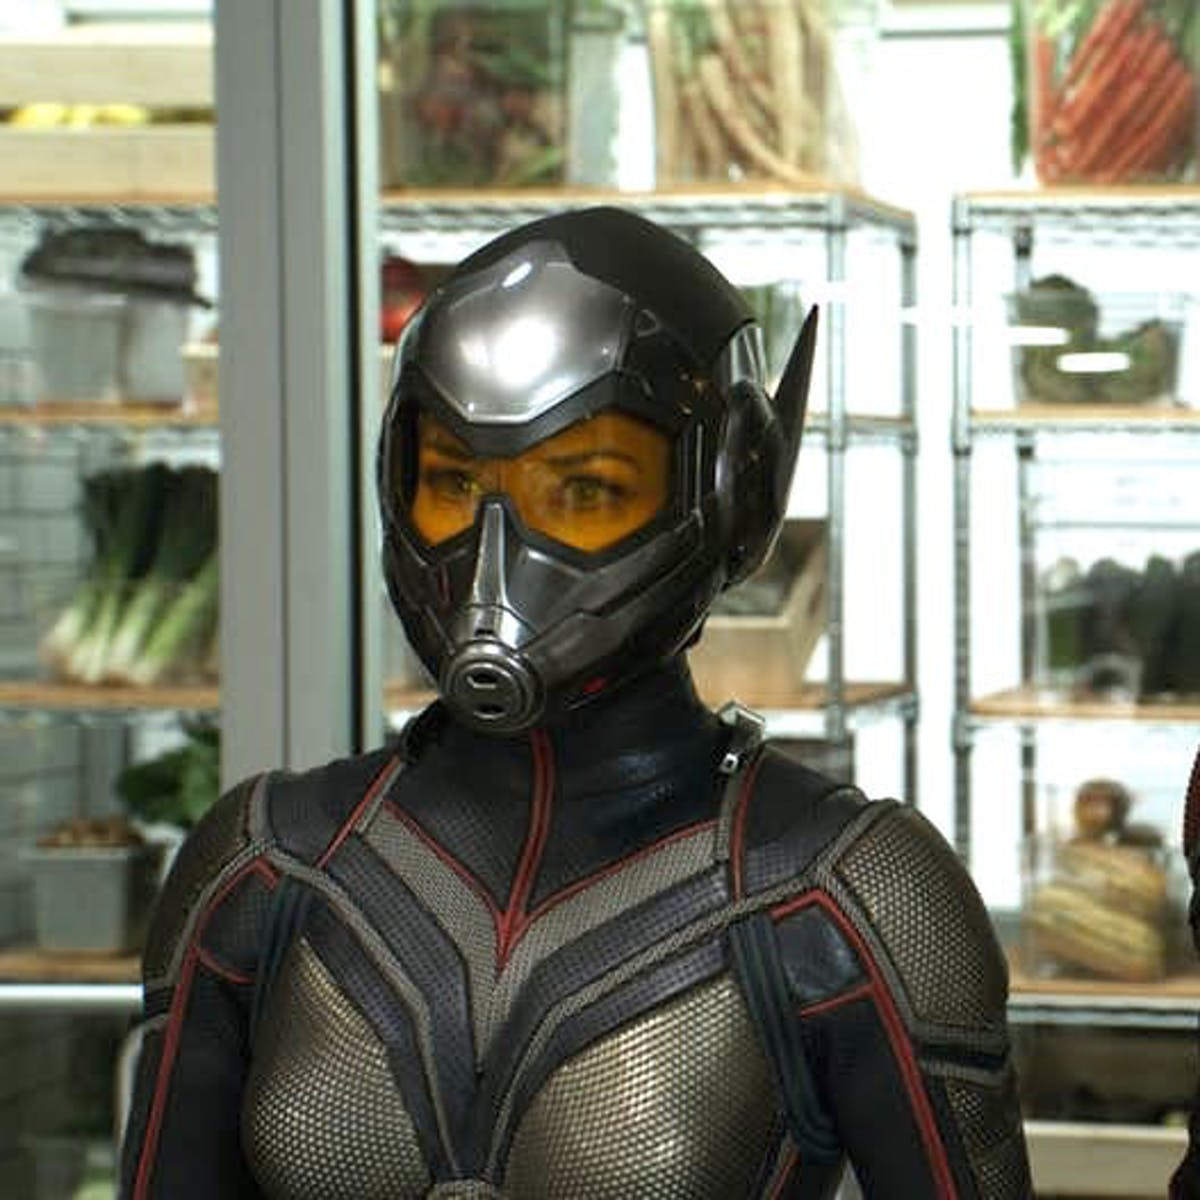 'Ant-Man 3' release date allegedly leaked as part of Marvel Phase 5